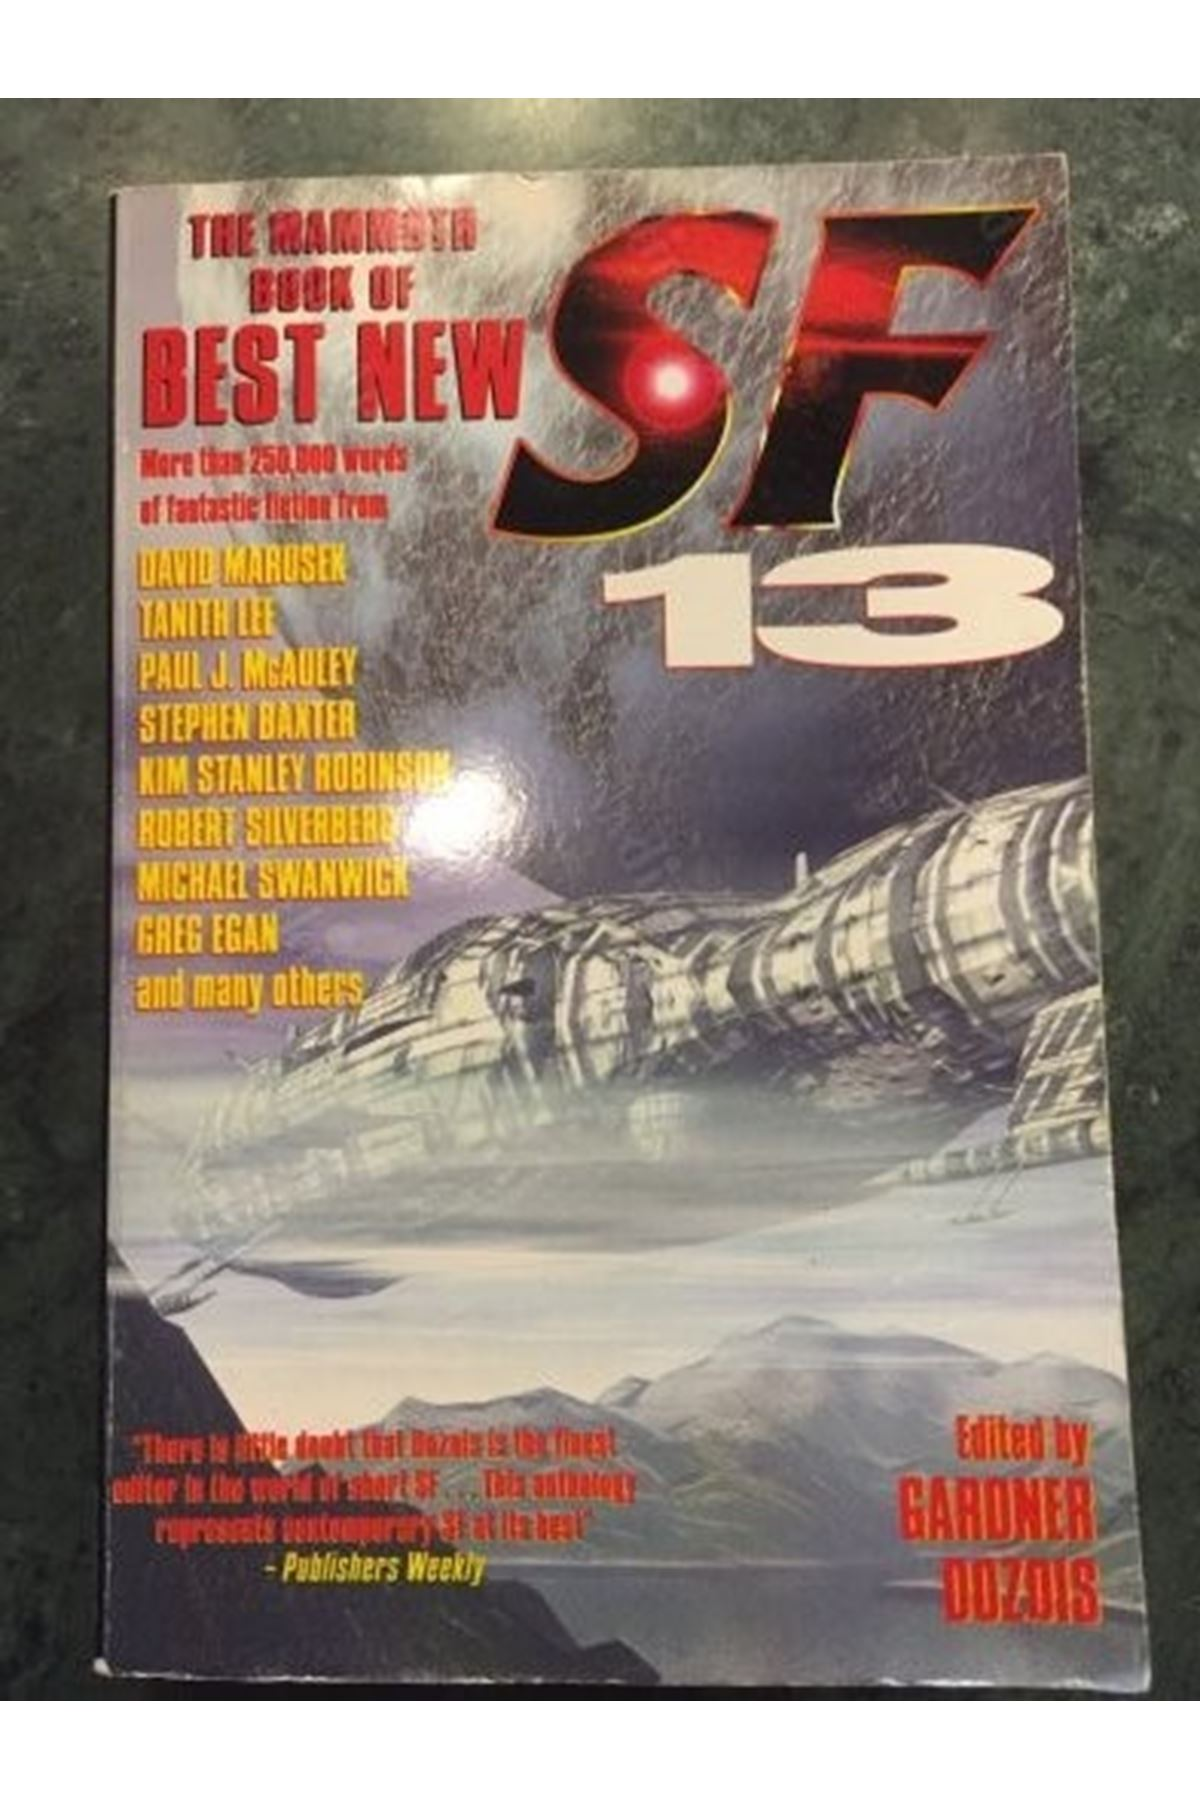 THE MAMMOTH BOOK OF BEST NEW - SCIENCE FICTION 13